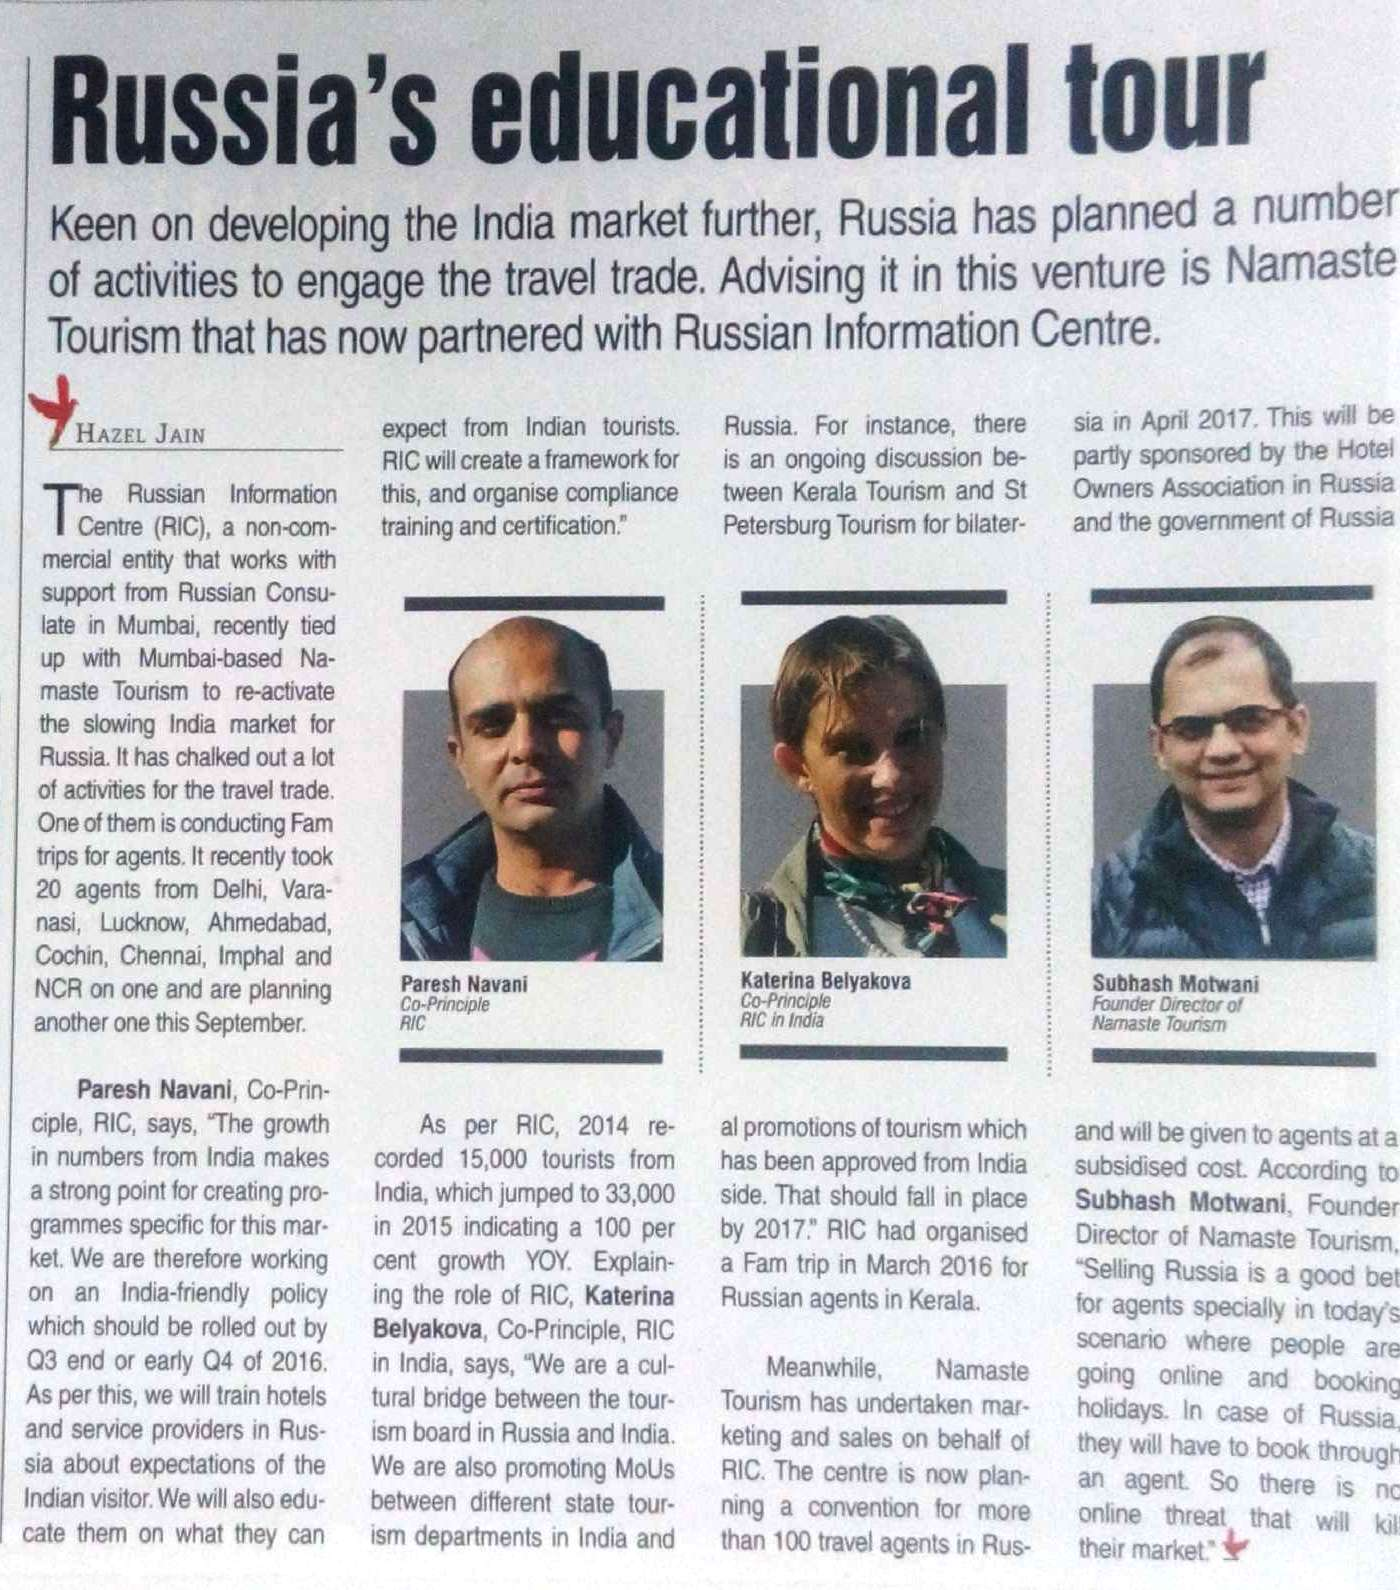 Russia Education Tour